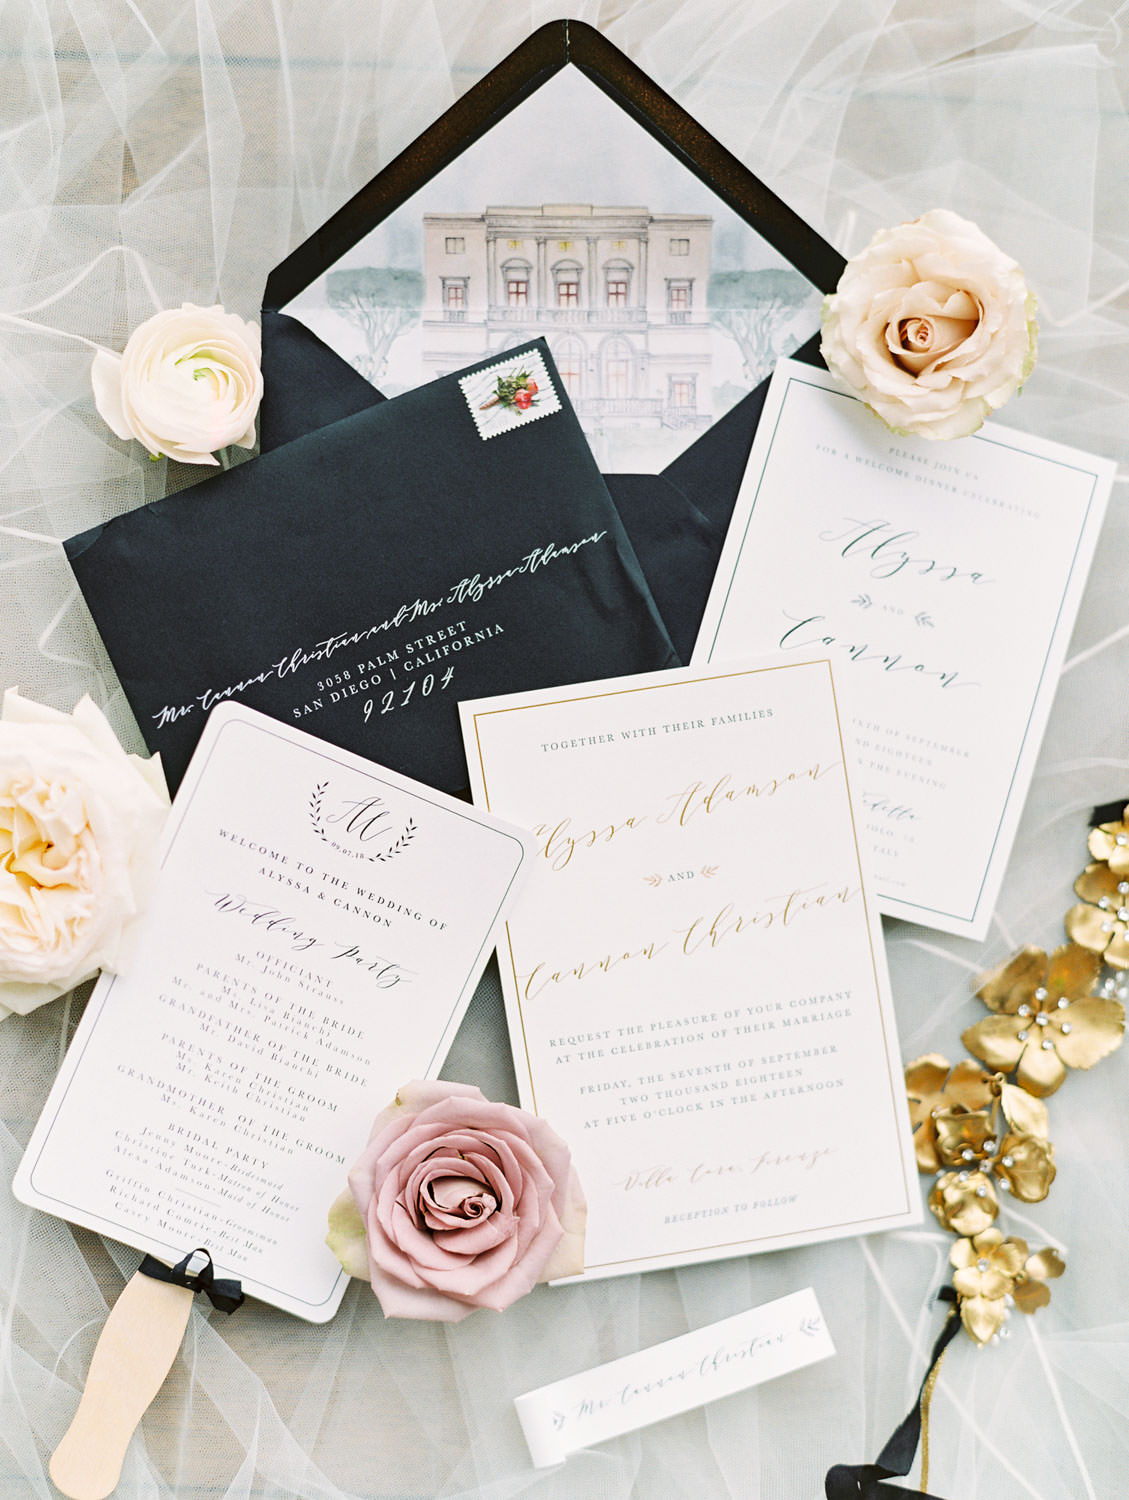 Film photography, White and gold gold foil wedding invitation suite with Italy venue illustration envelope liner, Cavin Elizabeth Photography